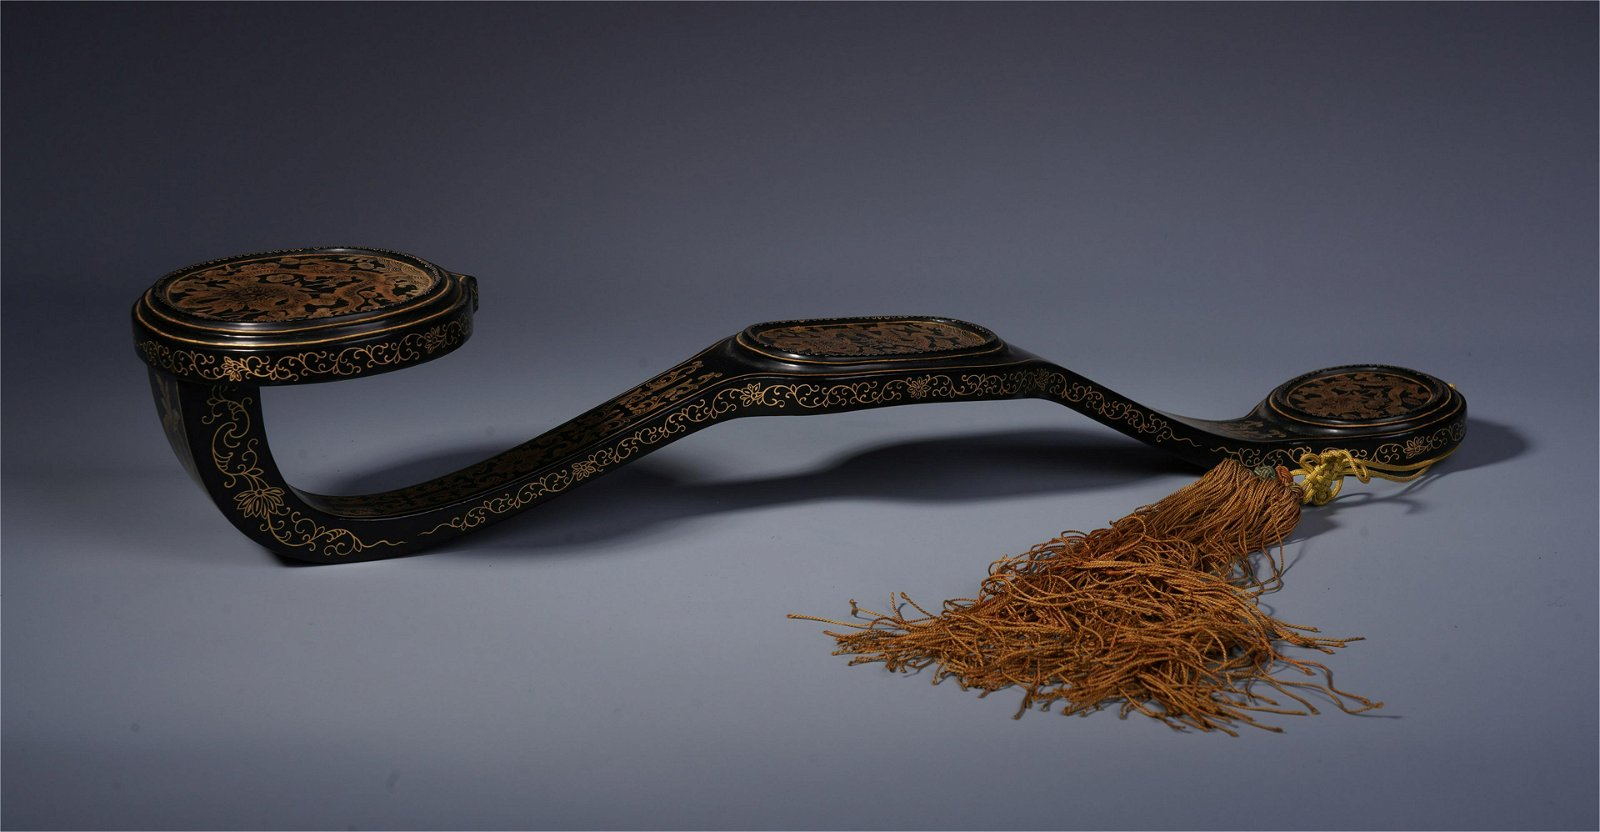 CHINESE GOLD PAINTED LACQUER RUYI SCEPTER